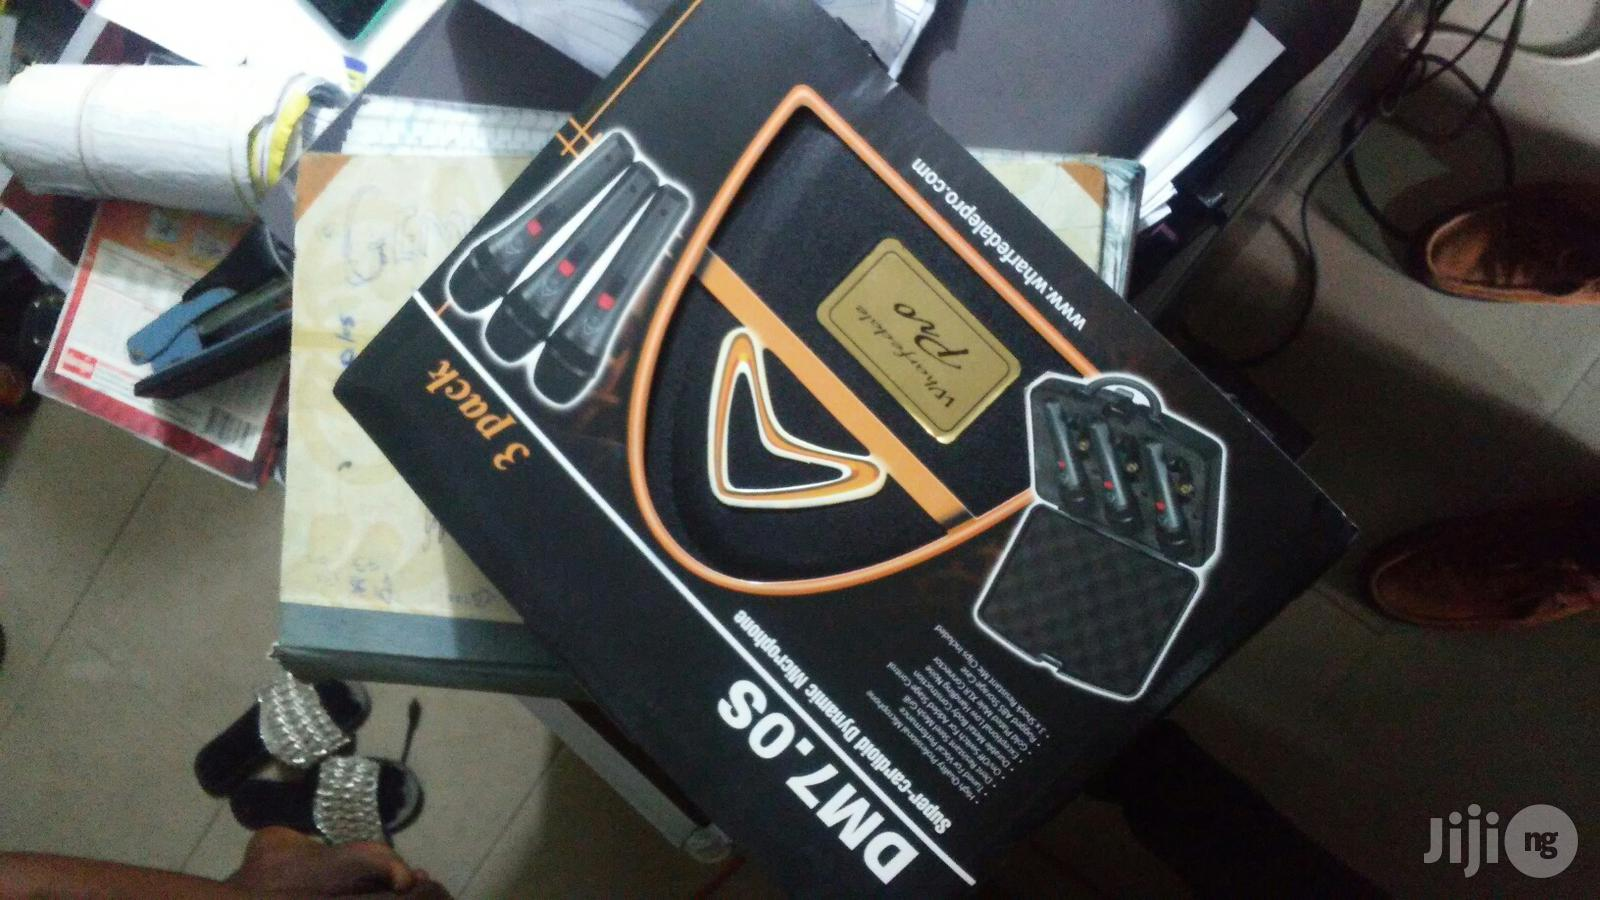 Wharfedale 3in1 Mic   Audio & Music Equipment for sale in Ojo, Lagos State, Nigeria